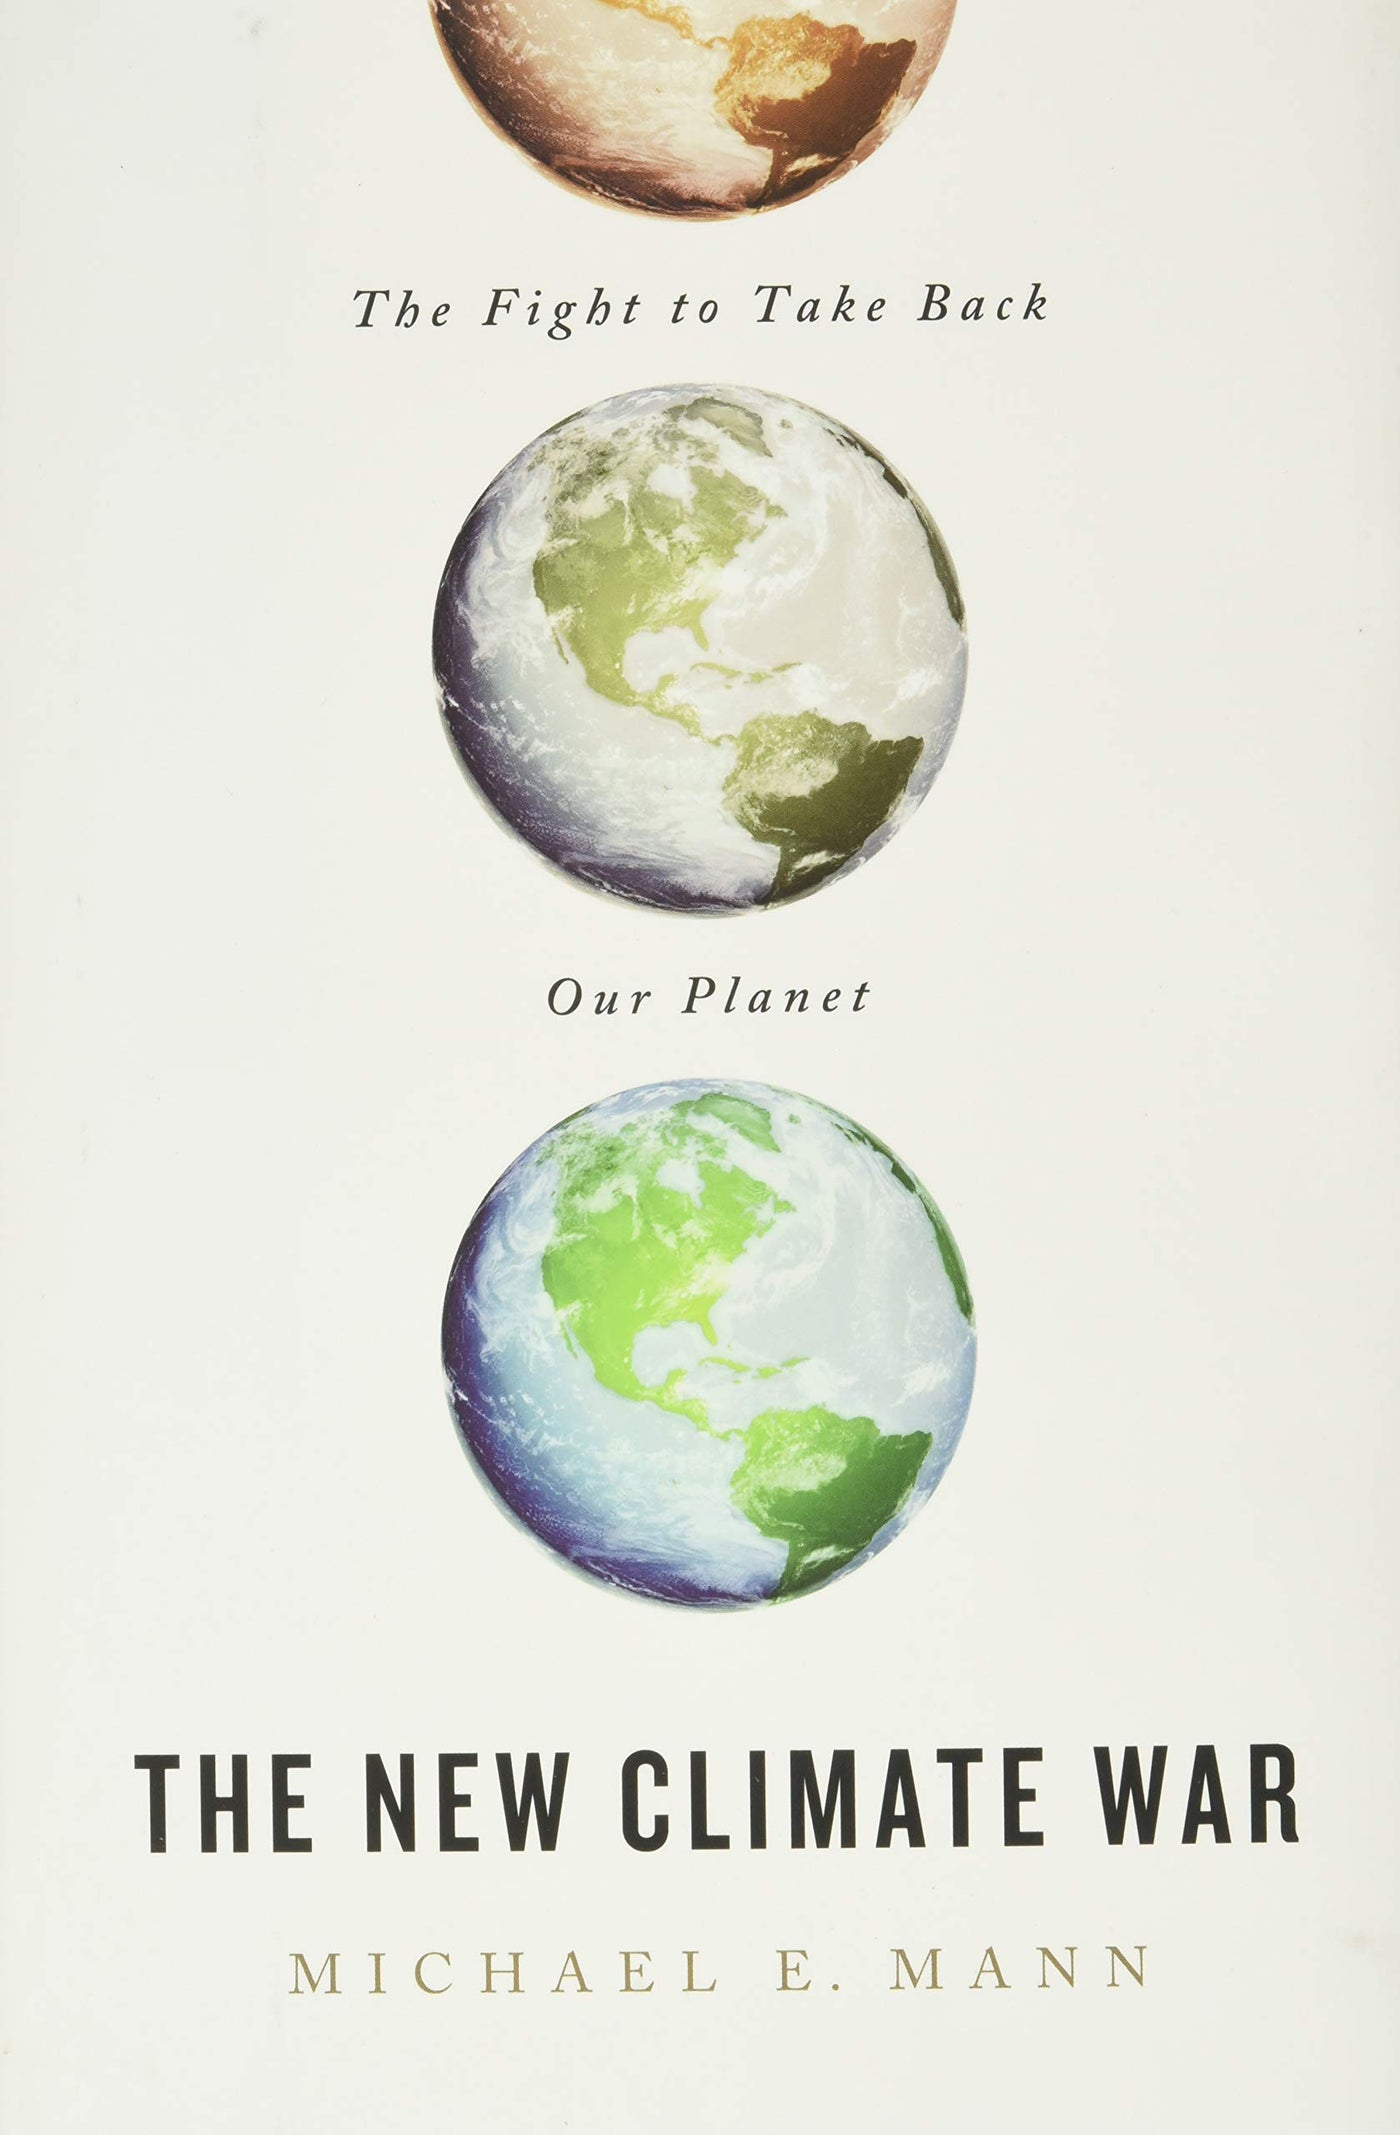 The New Climate War: The Fight to Take Back Our Planet by Michael Mann